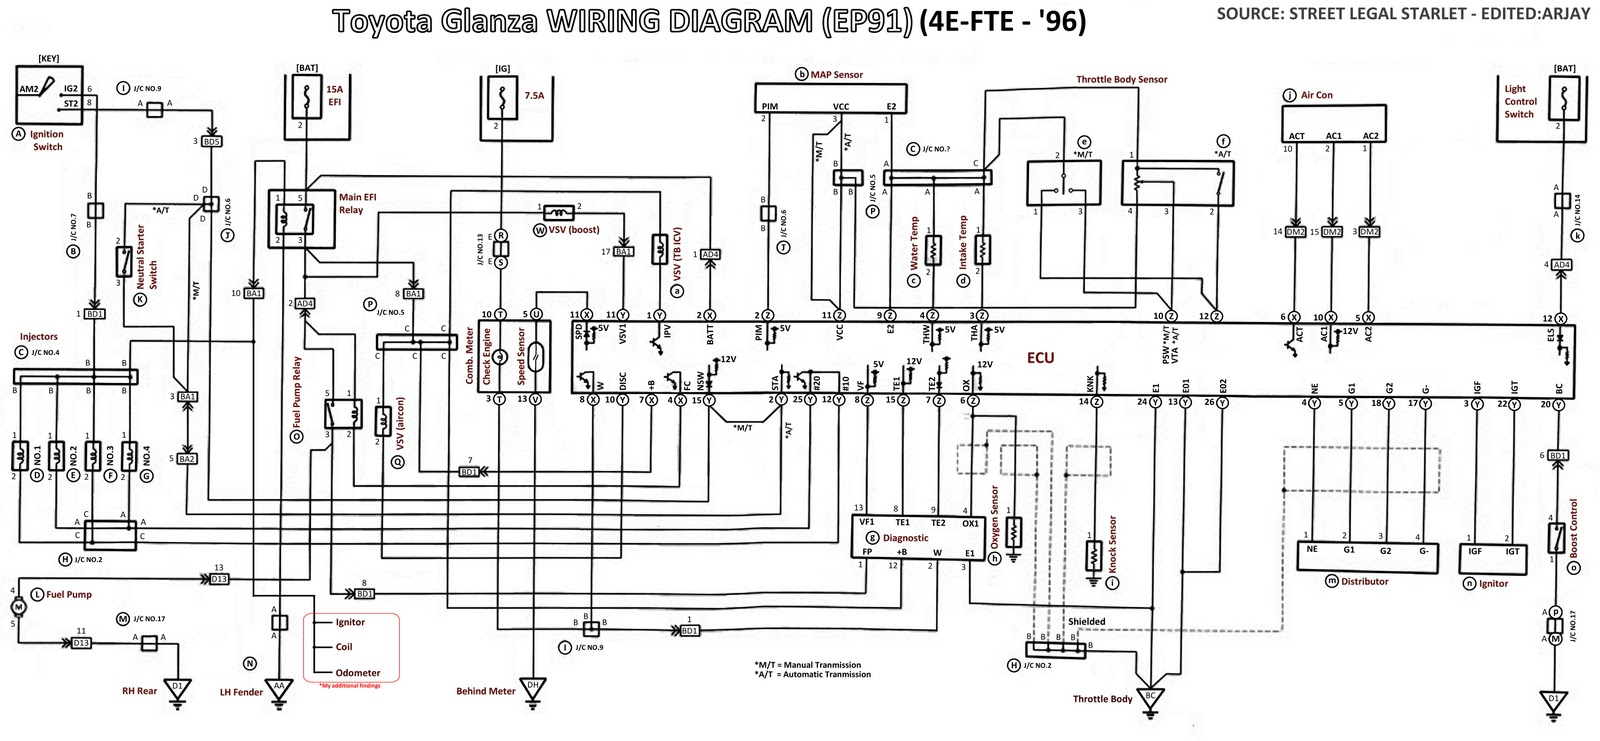 Toyota Yaris Electrical Wiring Diagram Manual Pdf Download